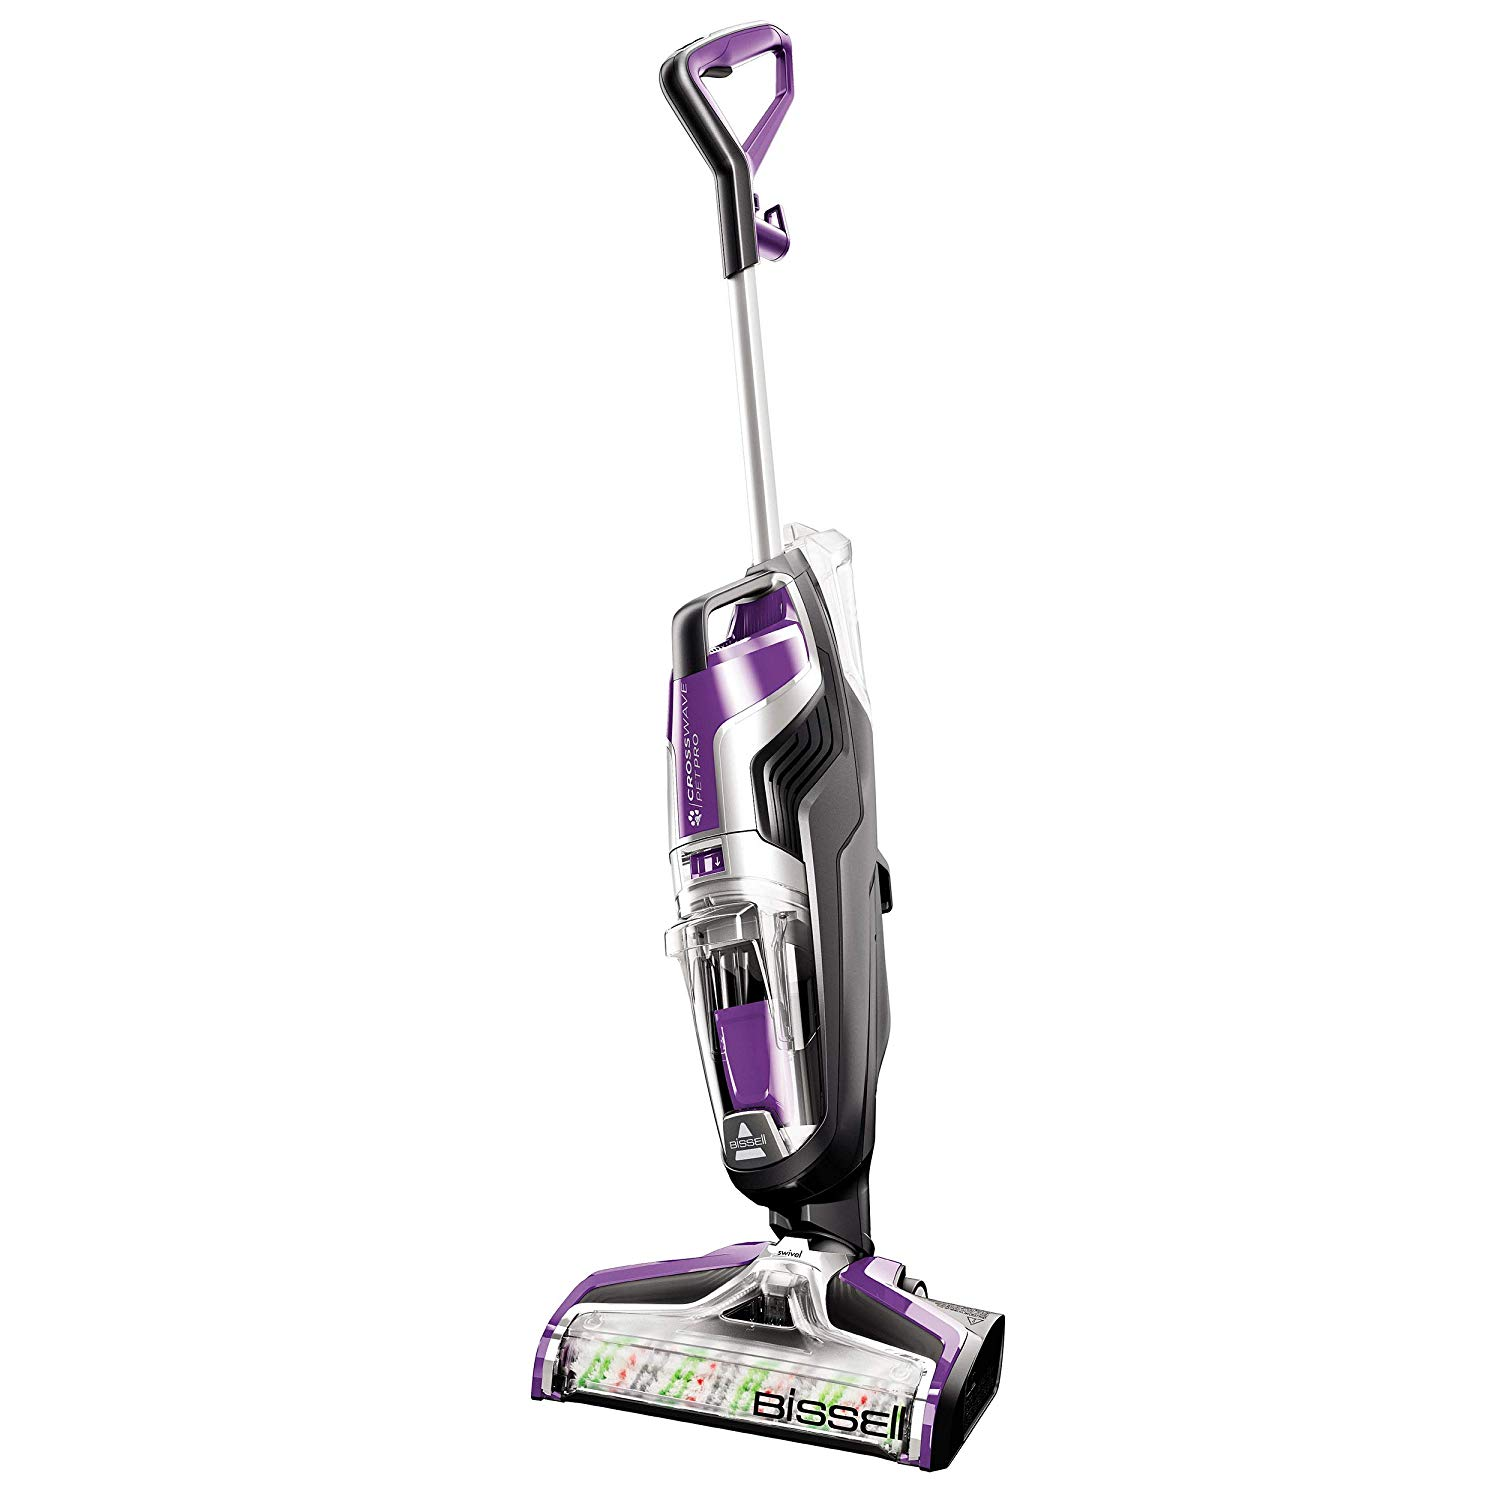 Bissell Crosswave 2306A vacuum